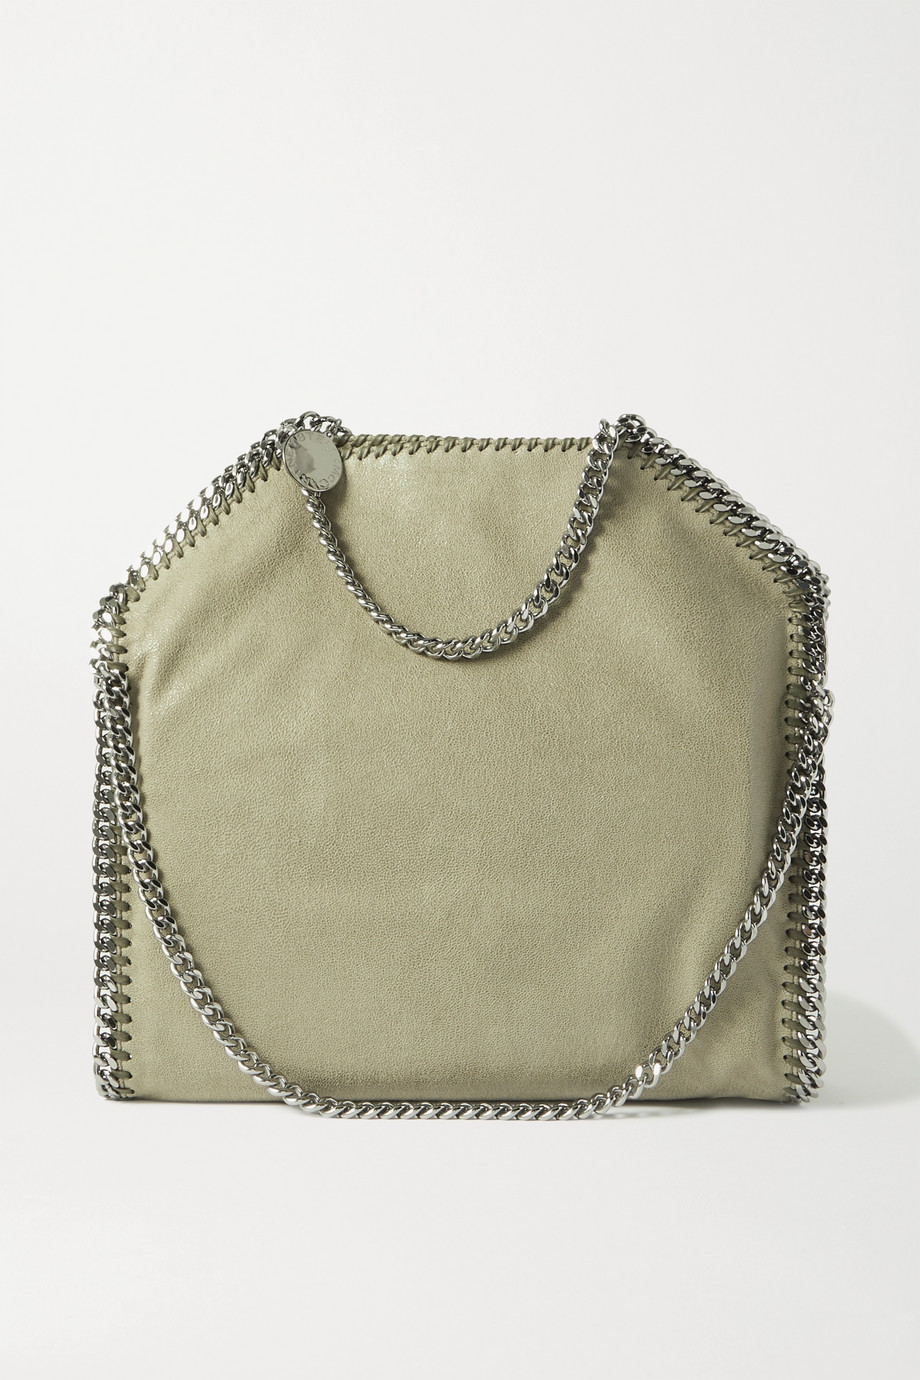 Stella McCartney The Falabella vegetarian brushed-leather tote